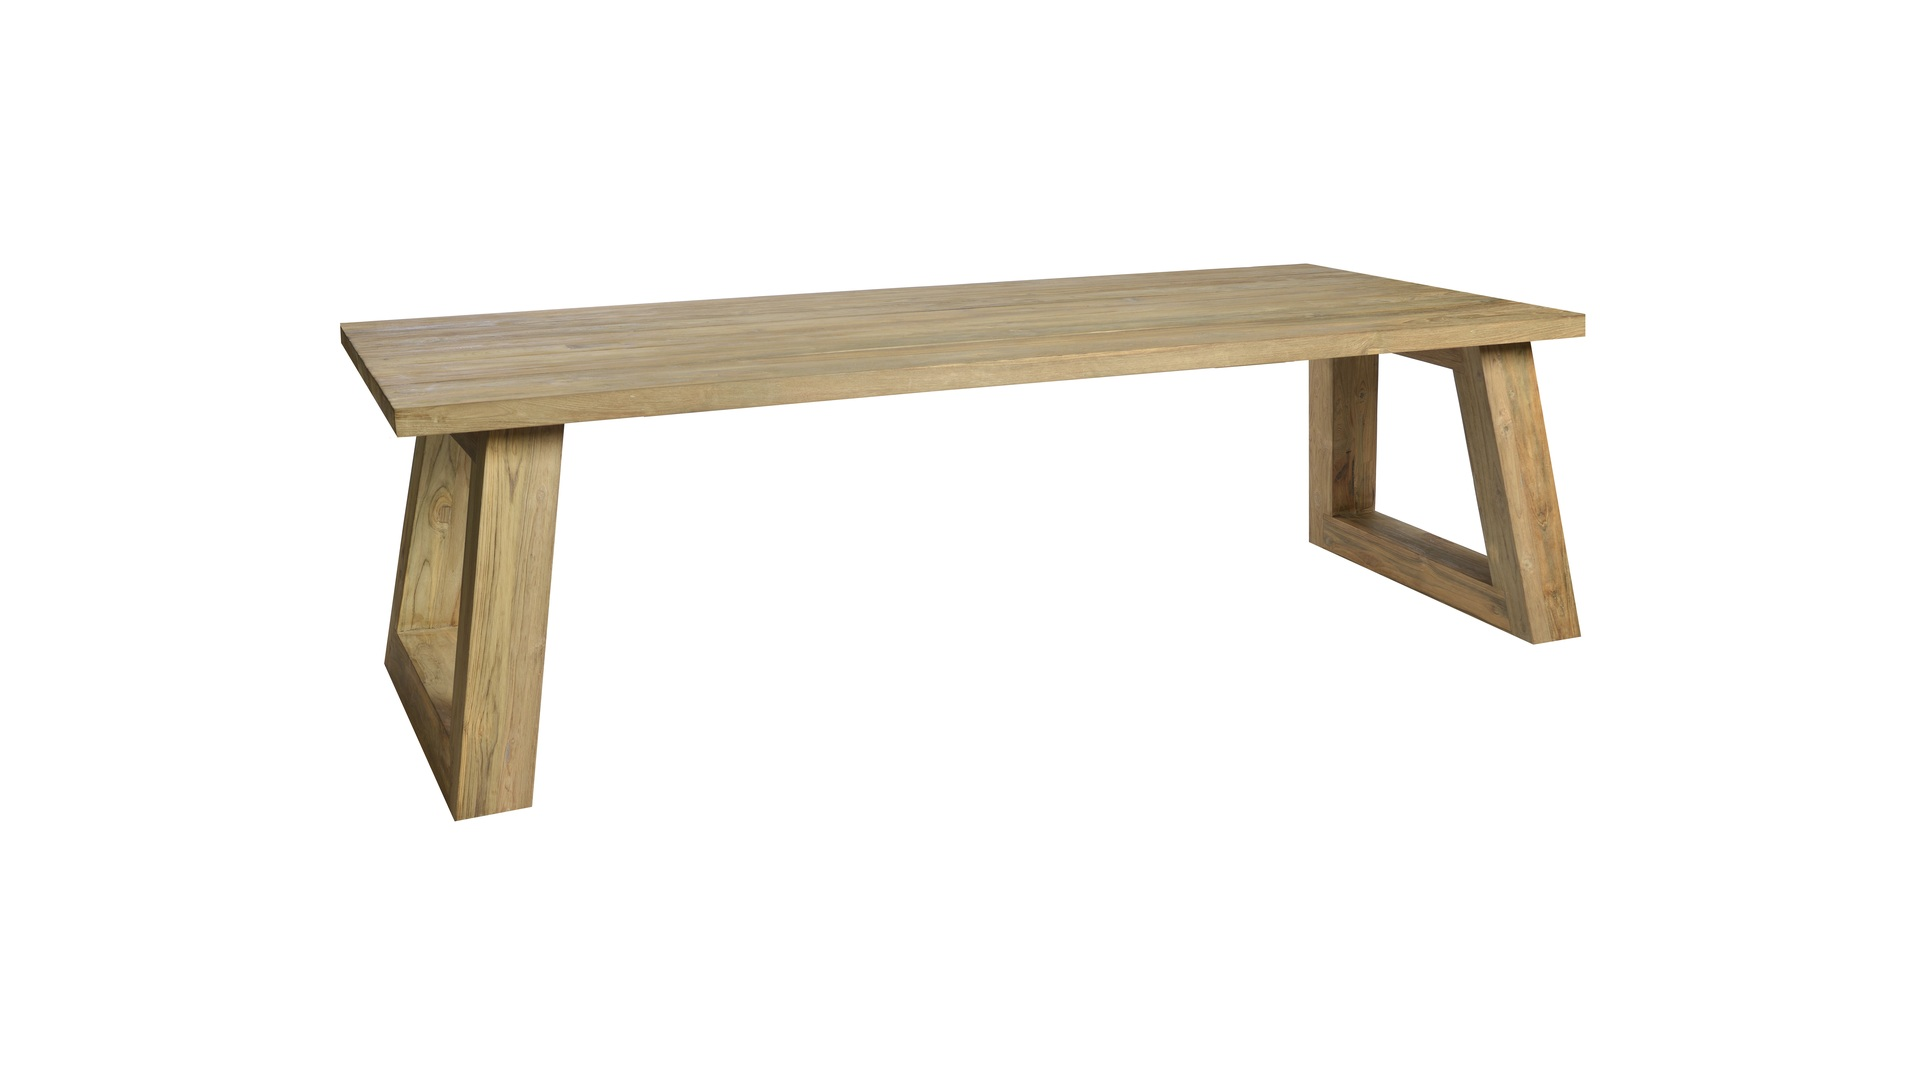 2020 Borek teak Parga dining table 250x100 7360 2.jpg